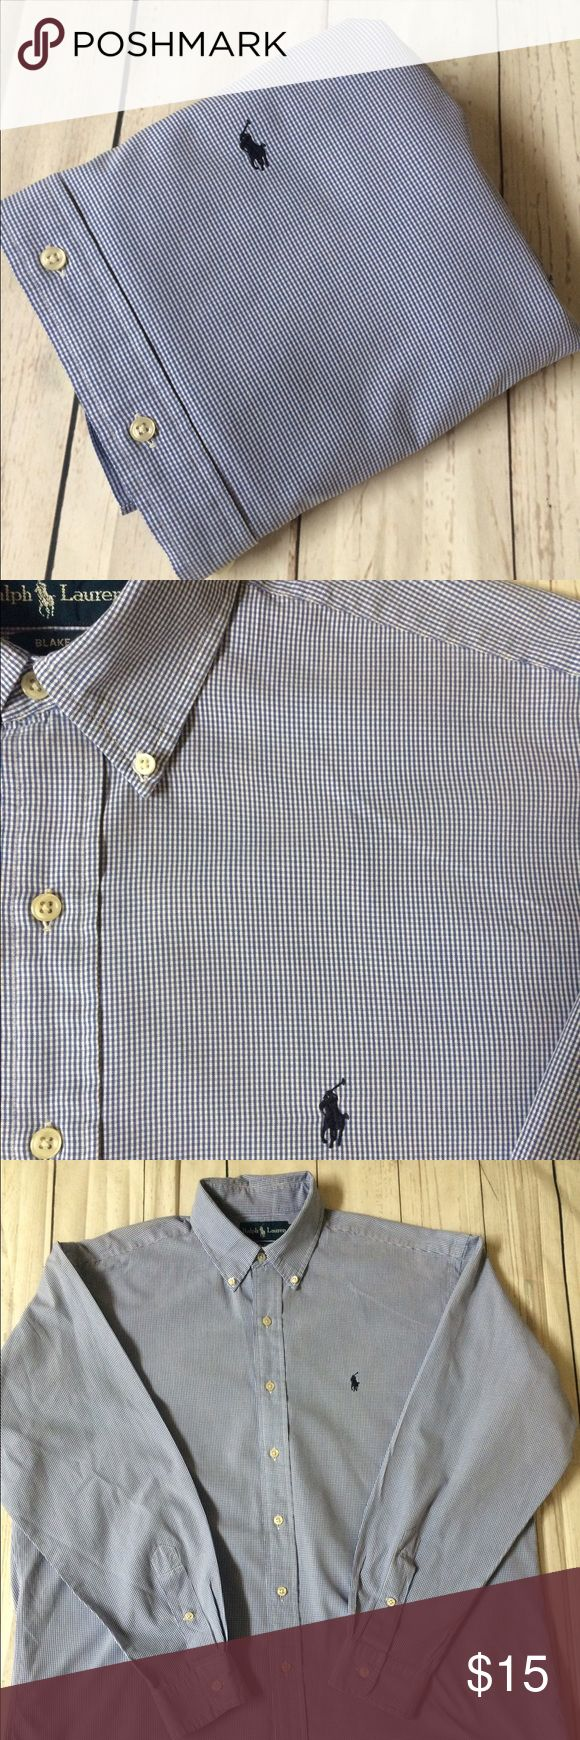 """🐰EASTER SALE🐰POLO•Ralph•Lauren•L•Shirt• 🐣EASTER SALE🐣 Men's Polo shirts are $15/ea🐣 No offers will be accepted or further reductions will be taken🐣 men's  long sleeve button front 100% cotton oxford shirt•L Blake per tag•Signature pony at chest•tiny amt of fraying & spot on back hem (not visibile when tucked in) as pictured• Chest: 27"""" Length: 33"""" Sleeve: 34"""" Shoulder: 21"""" Polo by Ralph Lauren Shirts Casual Button Down Shirts"""